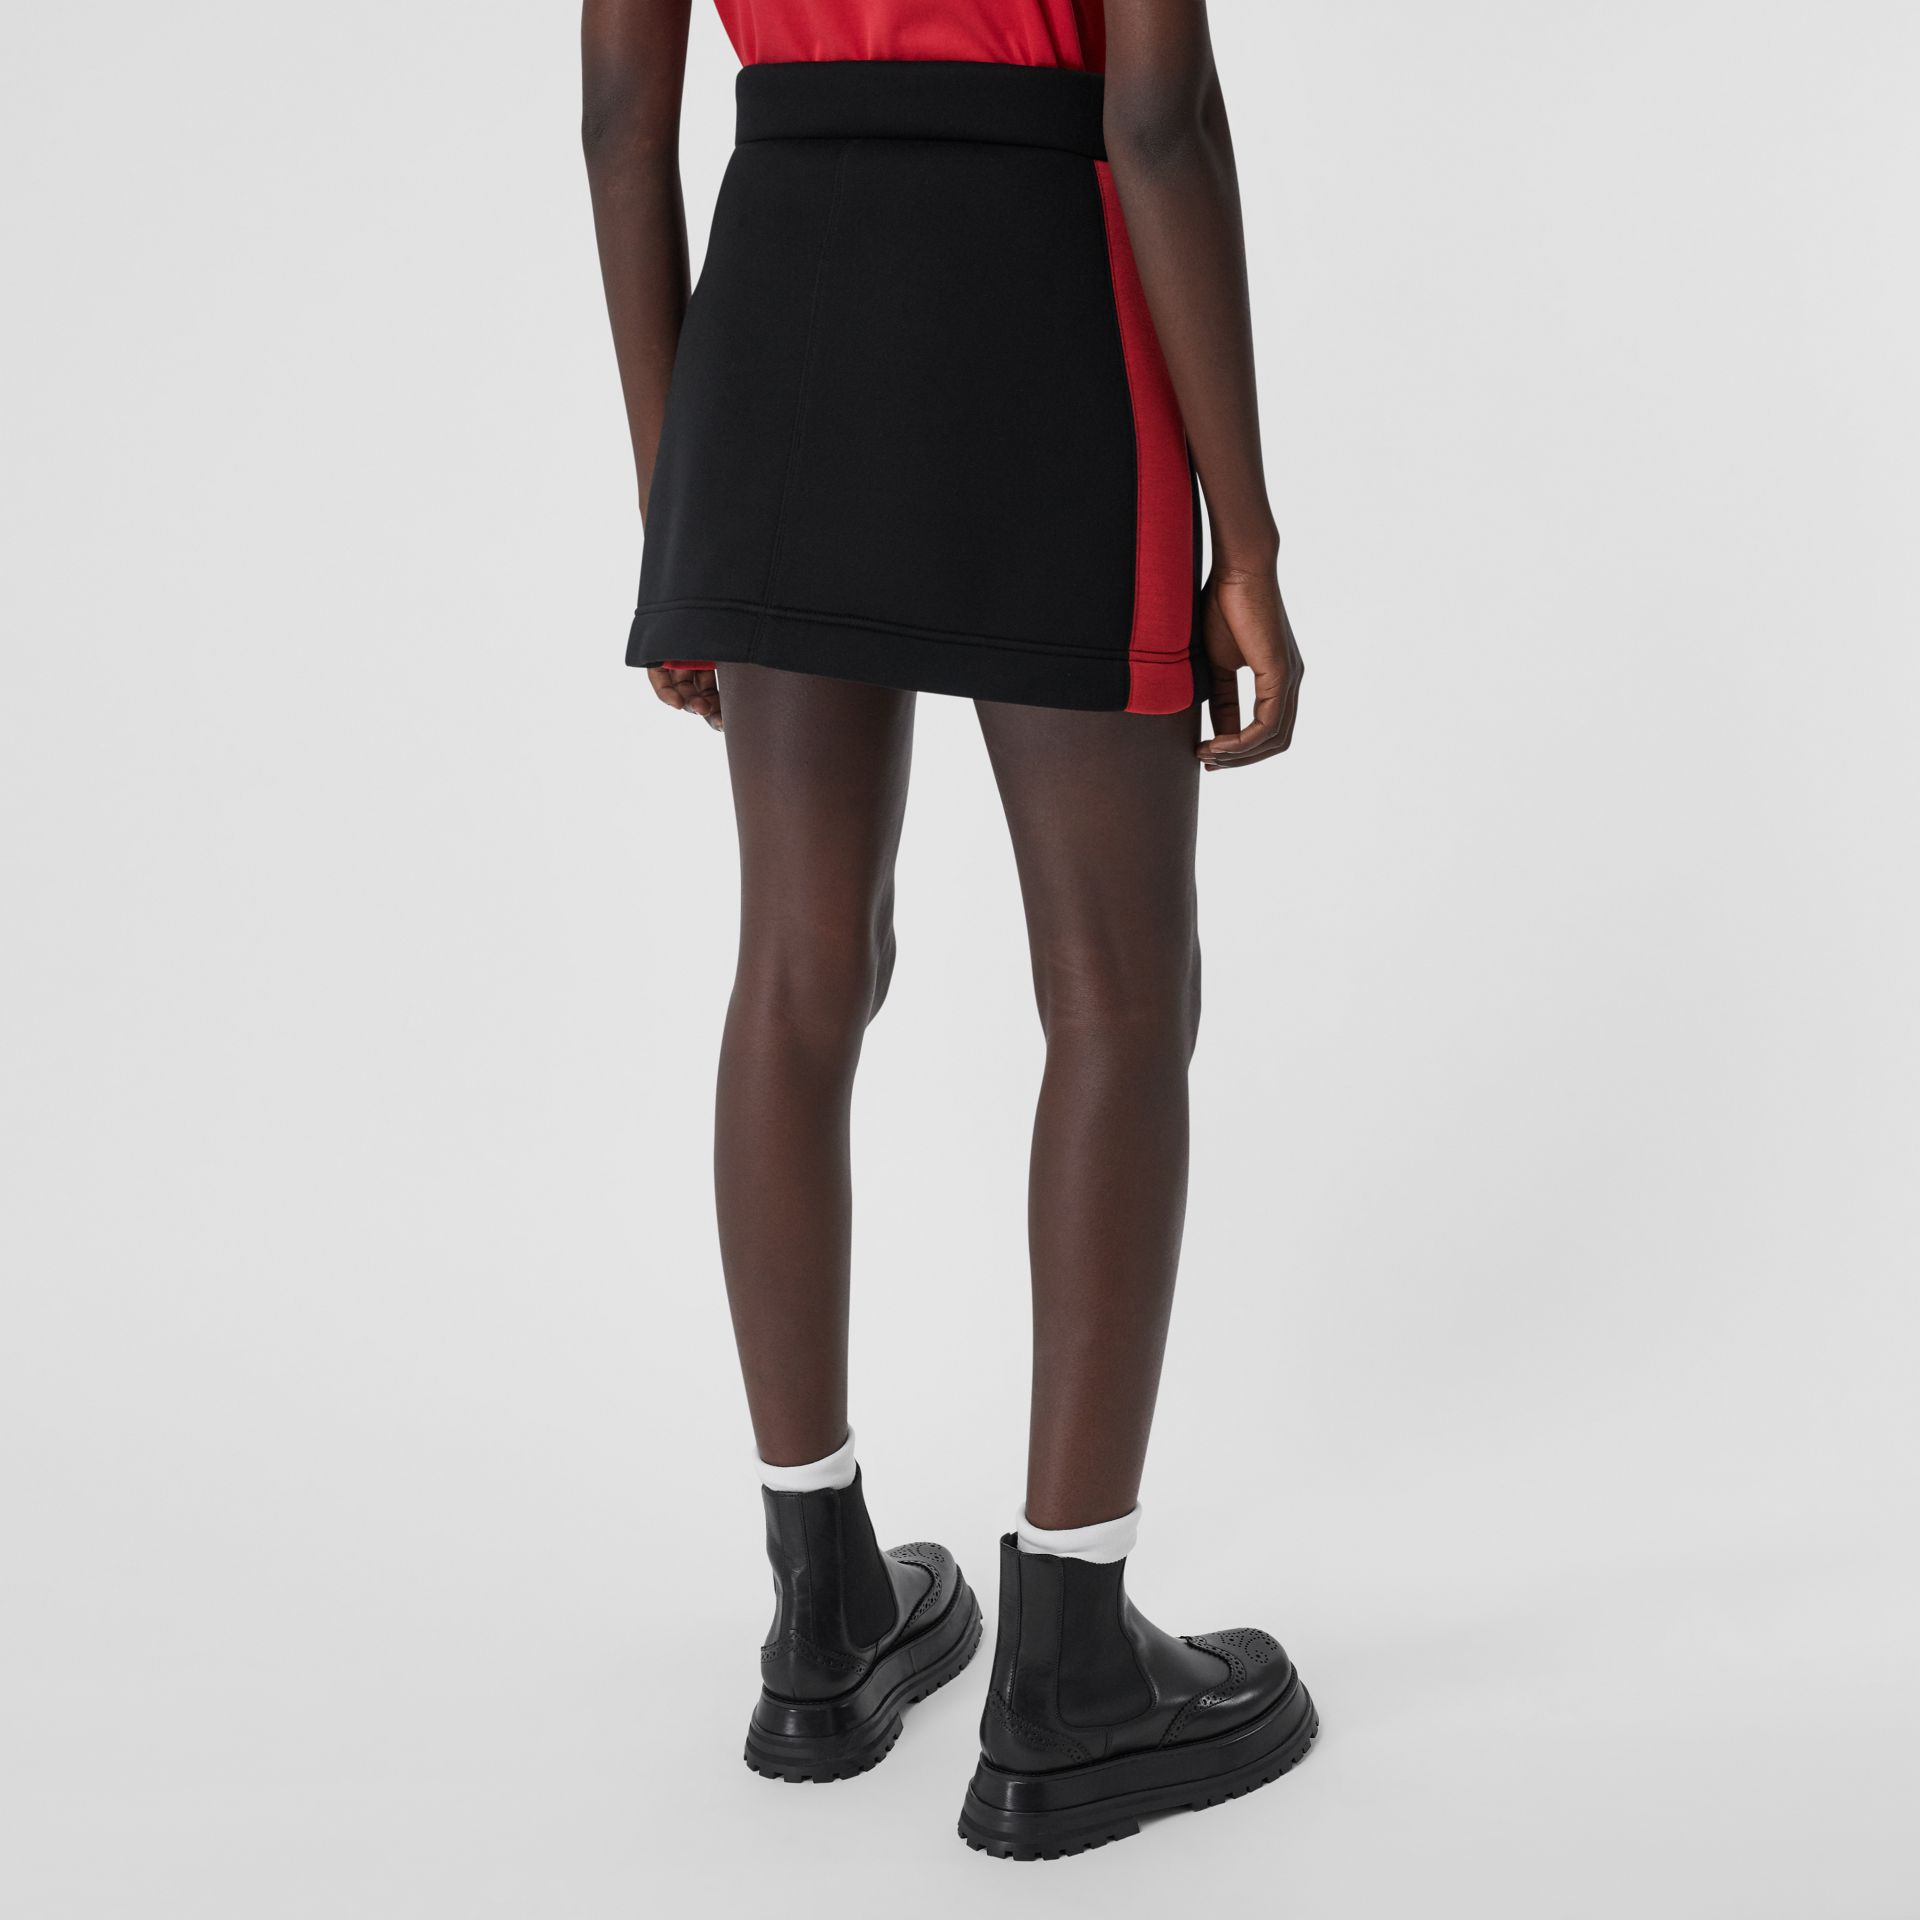 Logo Detail Neoprene Mini Skirt in Black - Women | Burberry United States - gallery image 2